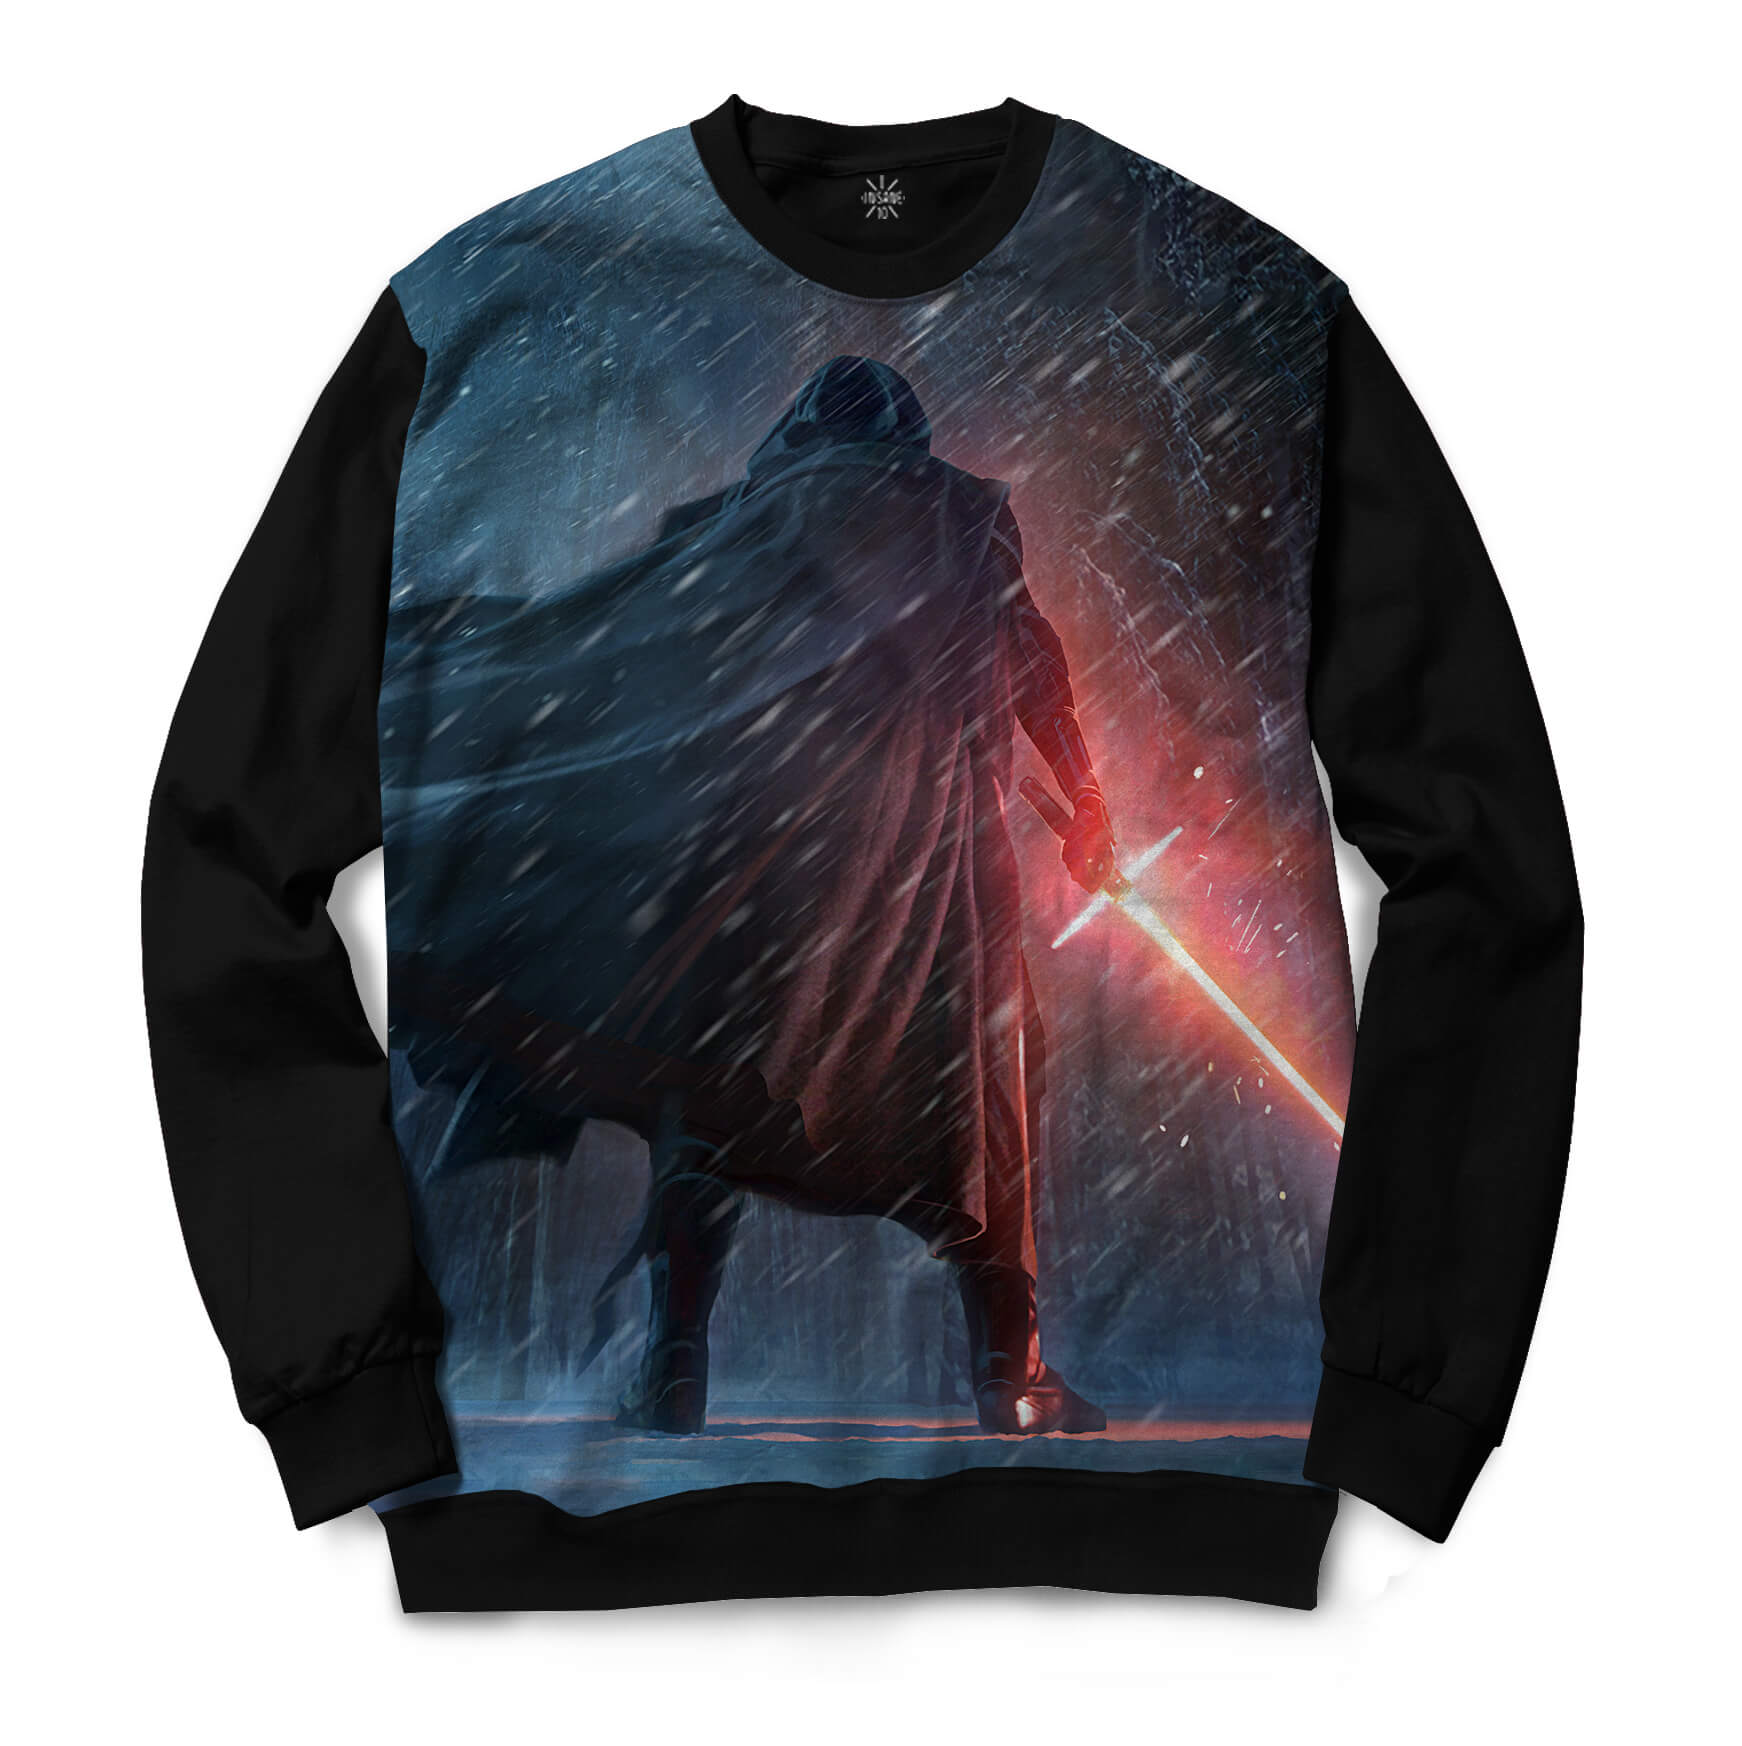 Moletom Gola Careca Insane 10 Star Wars Kylo Ren de Costas Full Print Azul